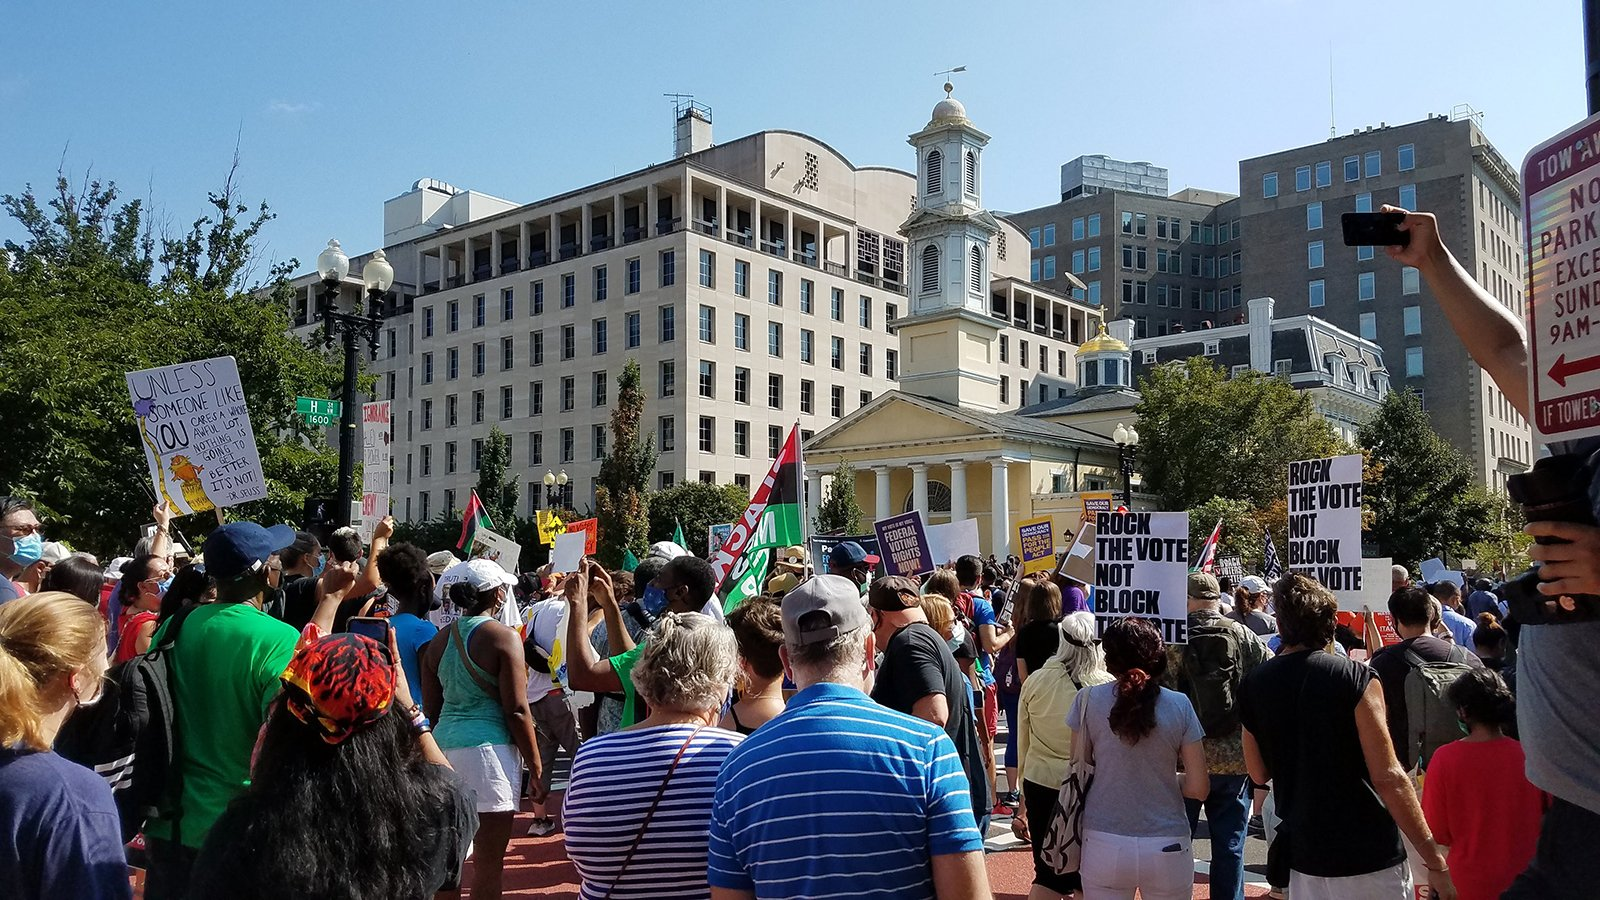 Participants in March On for Voting Rights pass Black Lives Matter Plaza and St. John's Episcopal Church, Saturday, Aug. 28, 2021, in Washington, DC. RNS photo by Adelle M. Banks